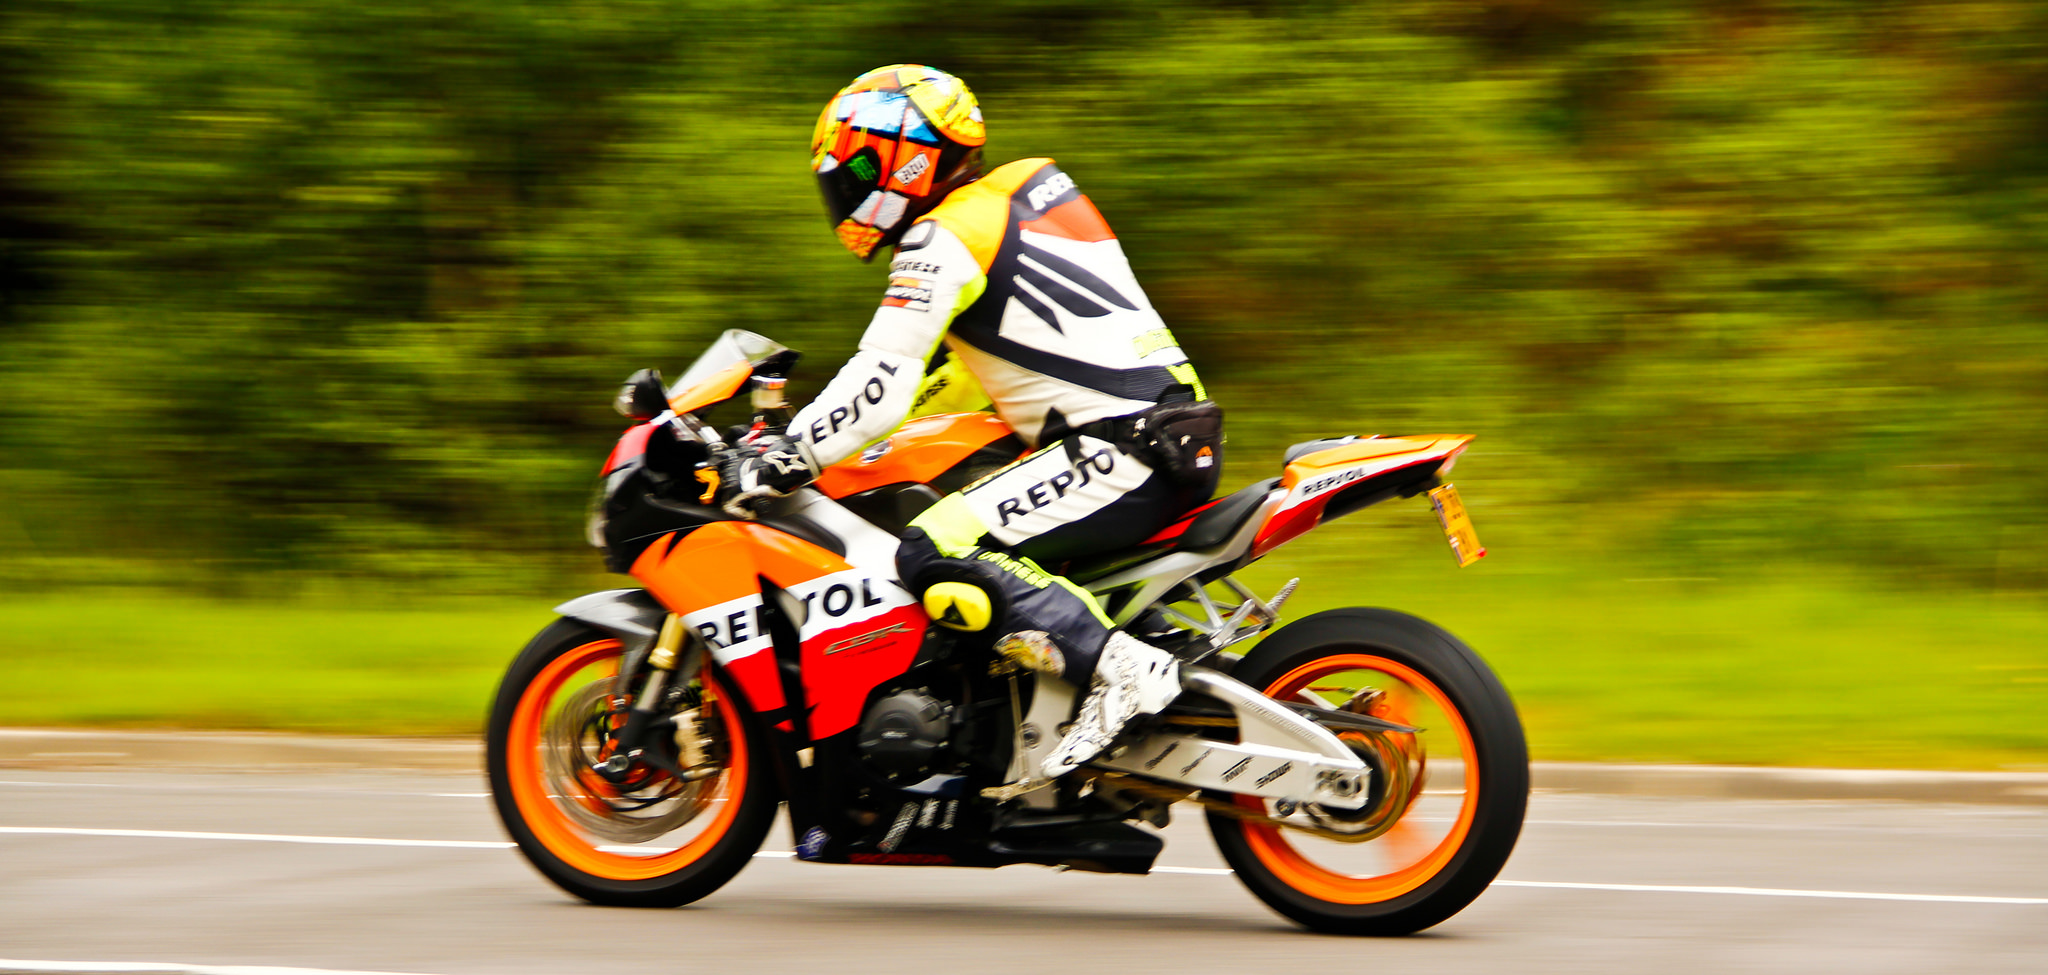 Motorcyclist Casualties – What's Going On?   Road Safety Analysis